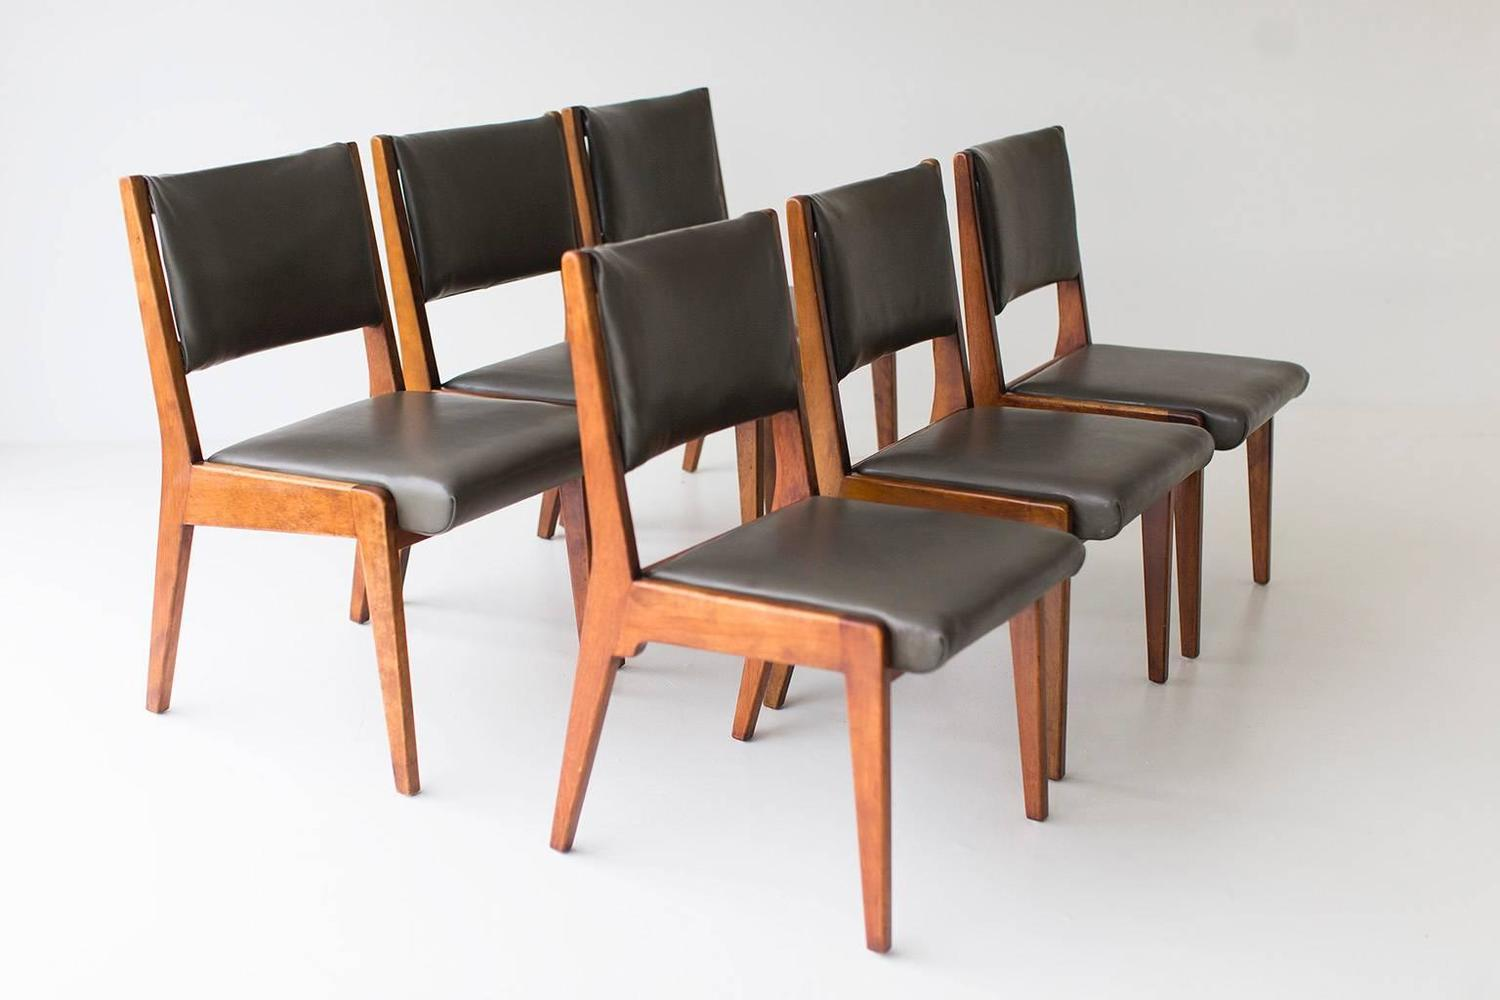 Early jens risom dining chairs for sale at 1stdibs - Jens risom dining chairs ...